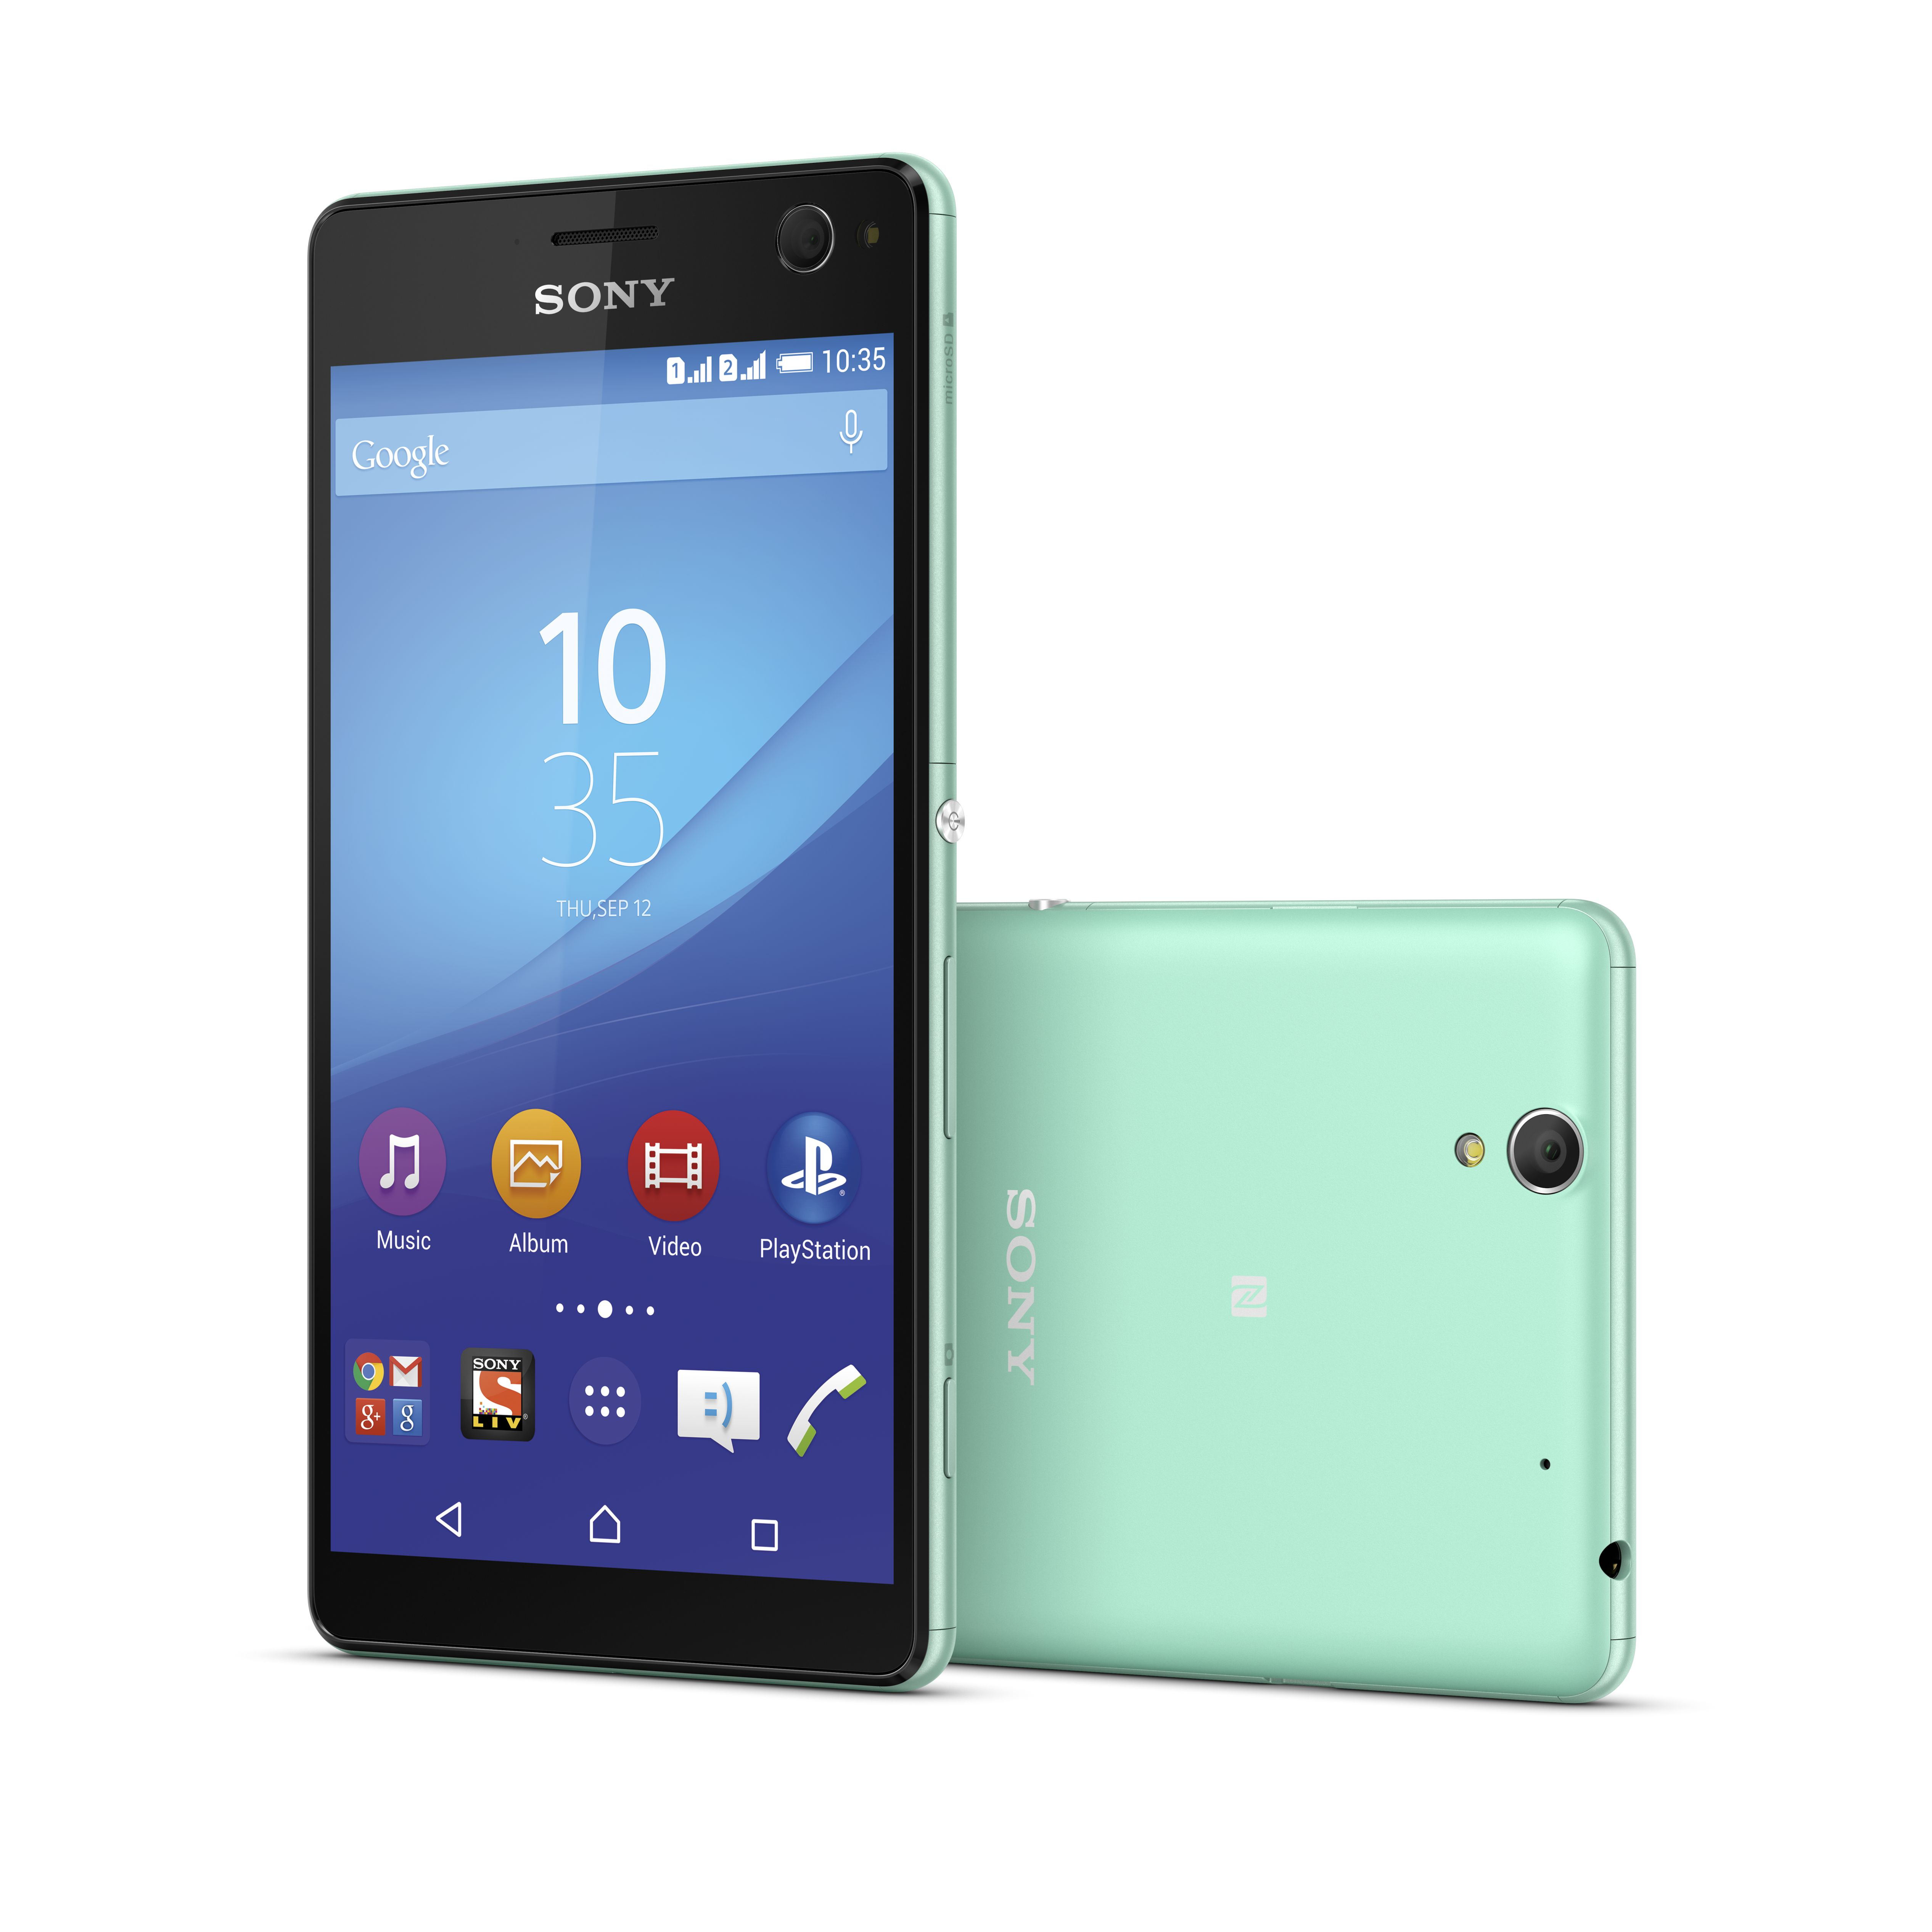 sony launches xperia c4 a selfie centric phone for 29 490 inr. Black Bedroom Furniture Sets. Home Design Ideas